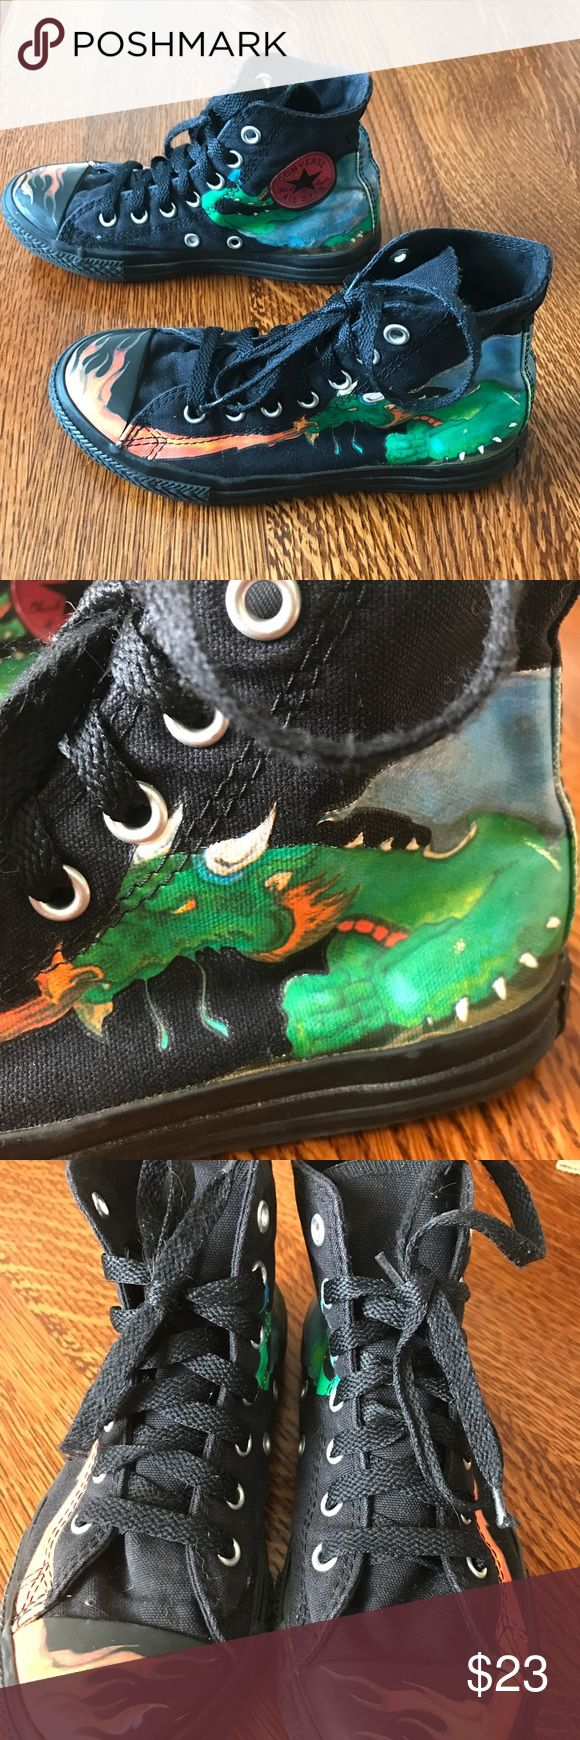 Boys Converse Chuck Taylors with Dragons. Size 2 Just perfect for that dragon lover!  These are preowned and in good, clean condition. Boys size 2, adjust sizing for girls. Converse Shoes Sneakers